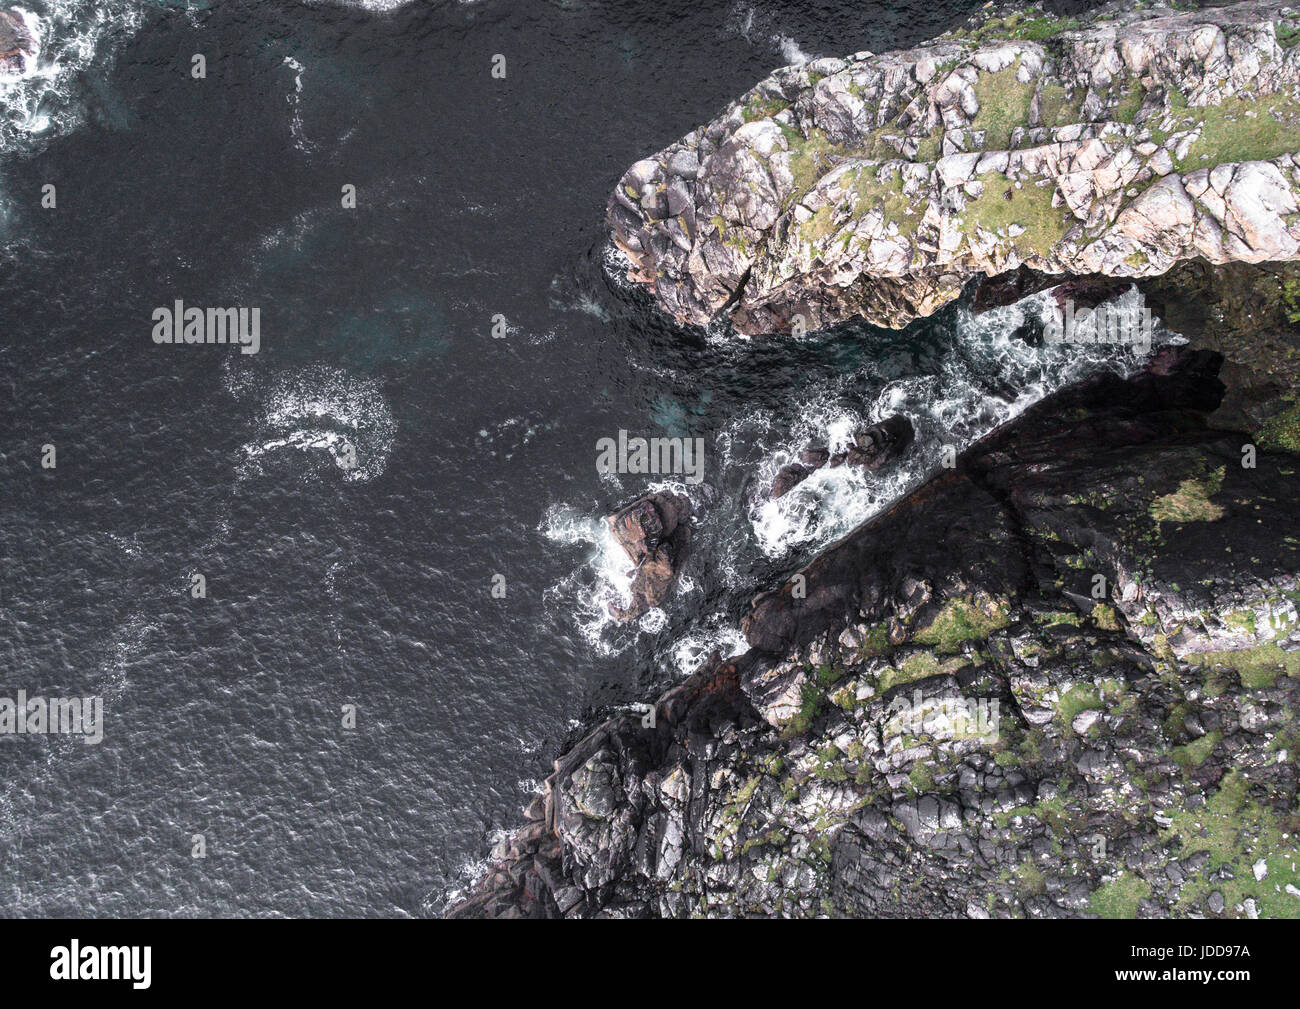 Aerial view of Cliffs at Garenin, Lewis, Outer Hebrides - Stock Image